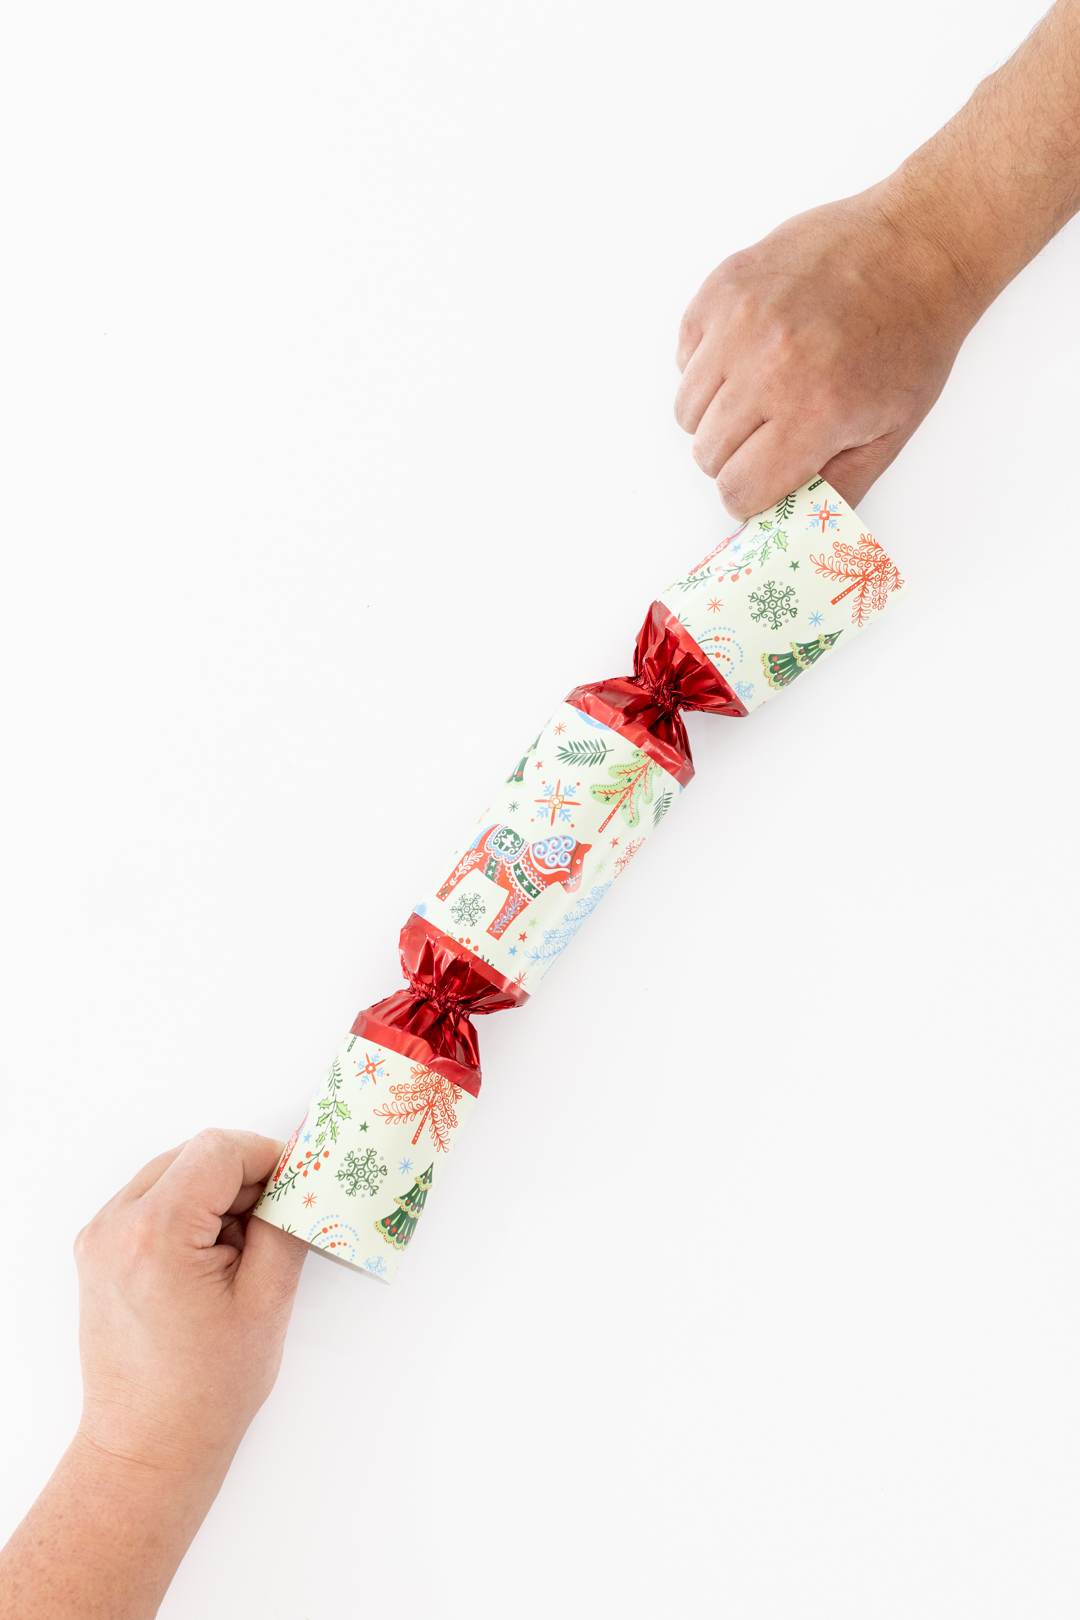 Two people tugging at a Christmas Cracker to demonstrate how to make it pop.